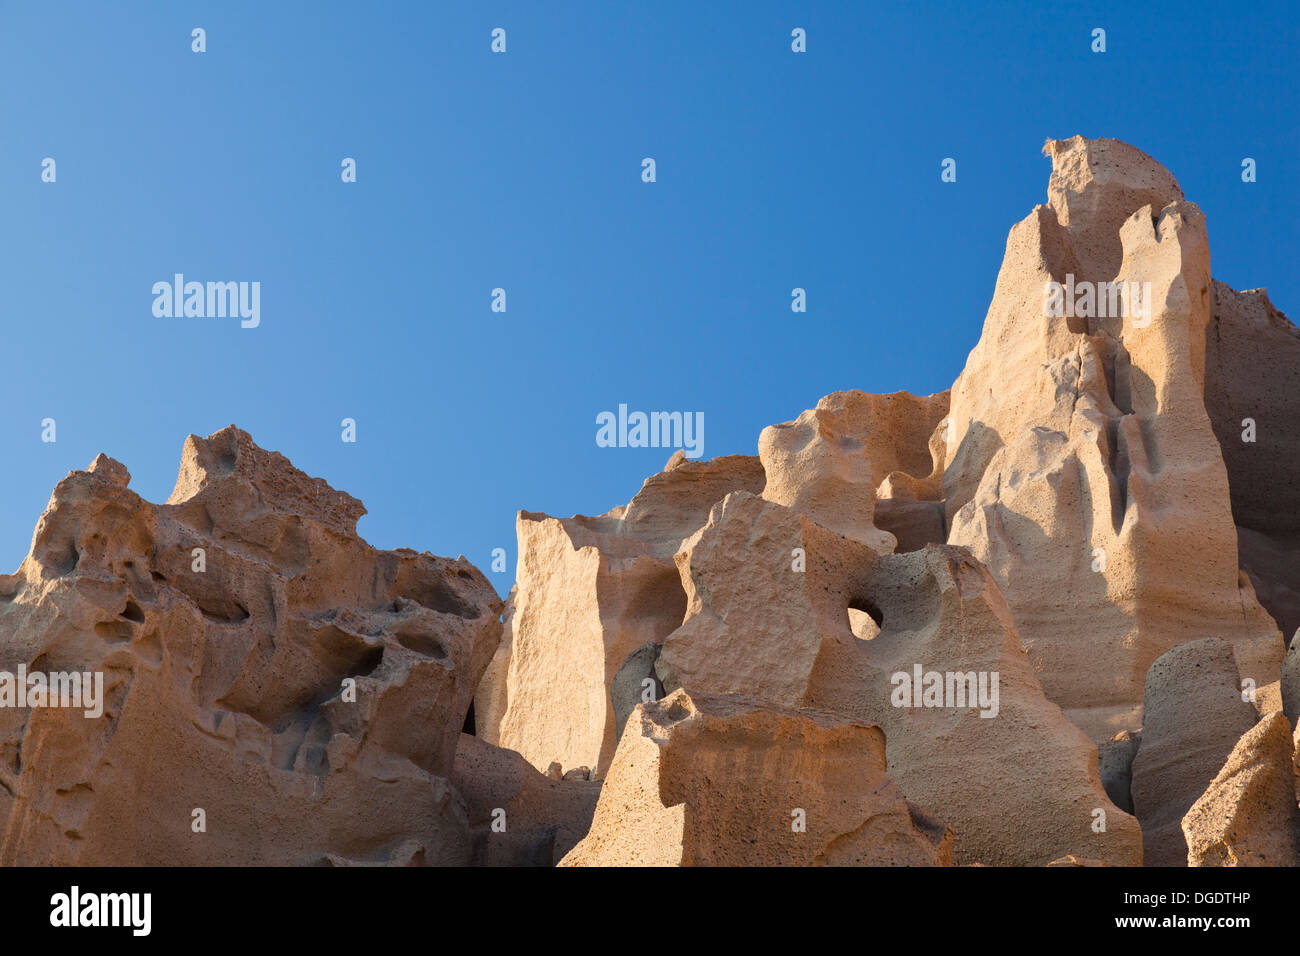 Vlychada Beach in Santorini, Greece with its spectacular pumice cliffs. - Stock Image